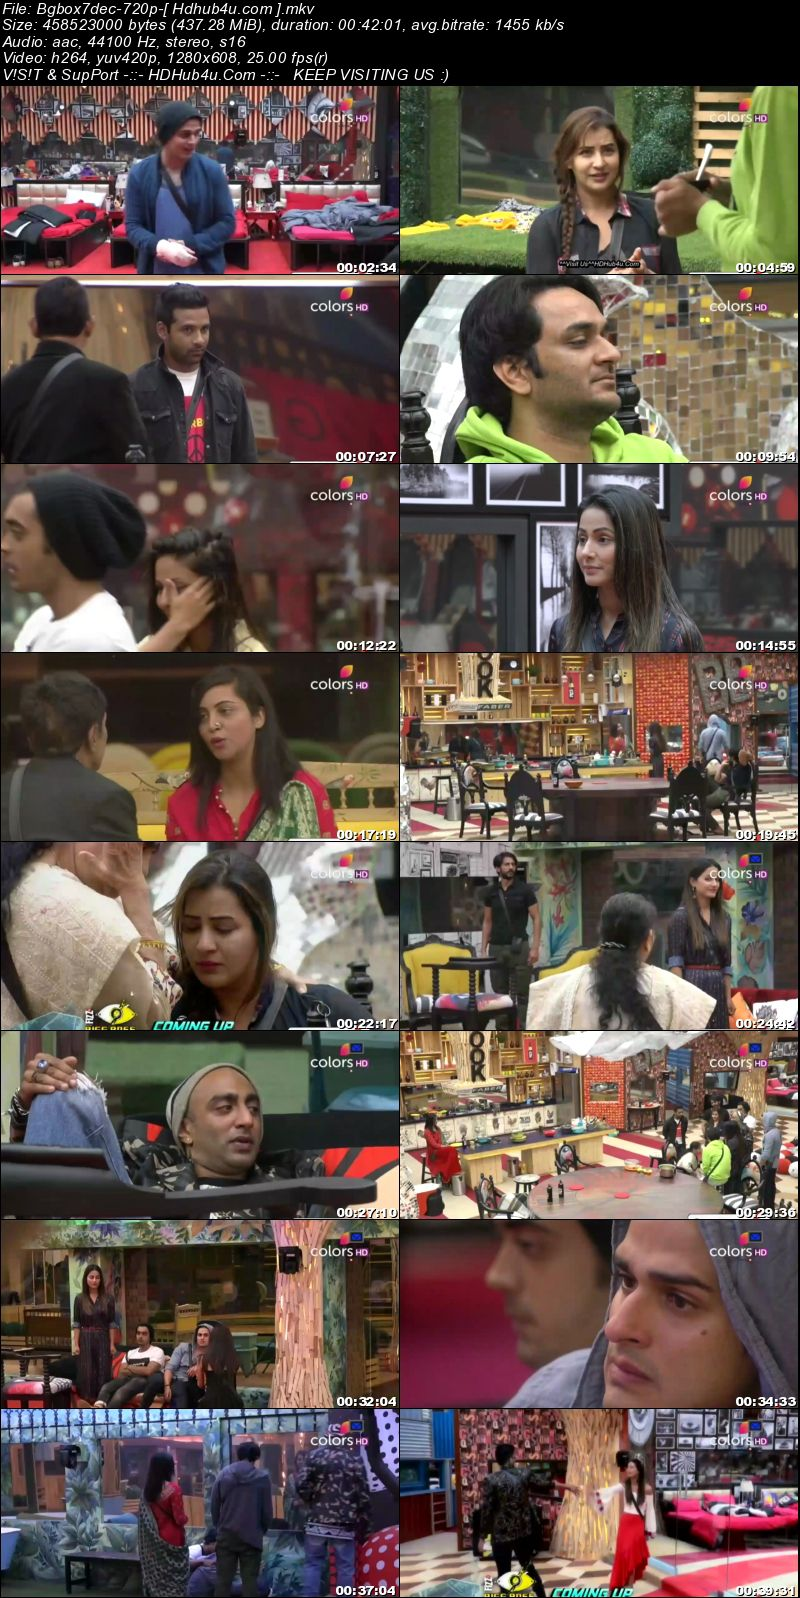 Bigg Boss S11E68 7th December 2017 HDTV 480p 200MB Download